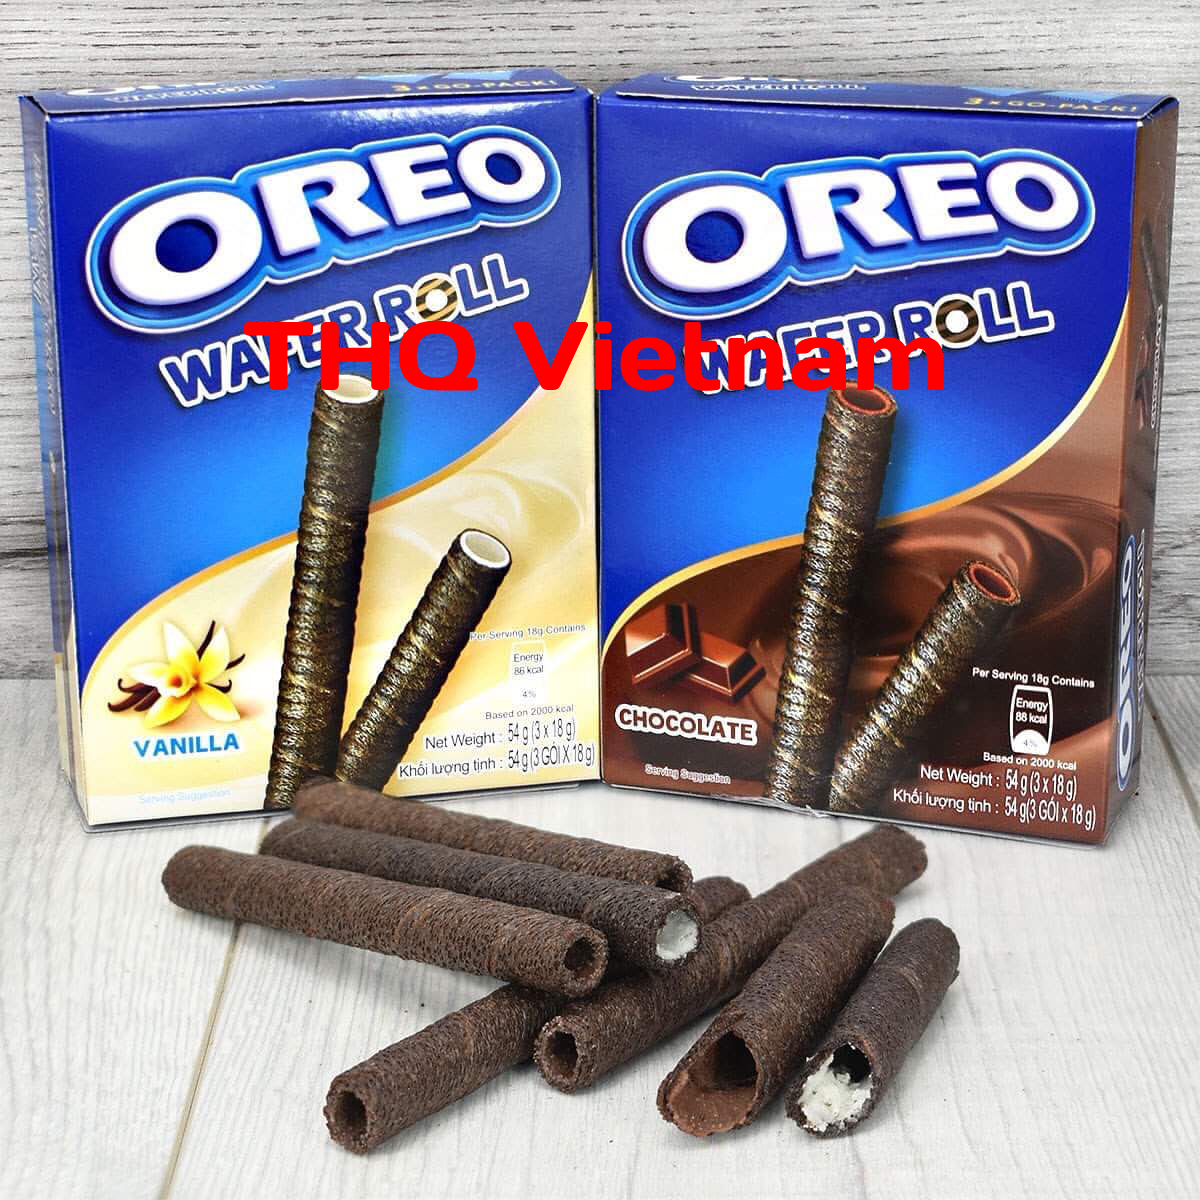 Oreo Wafer Roll 54g